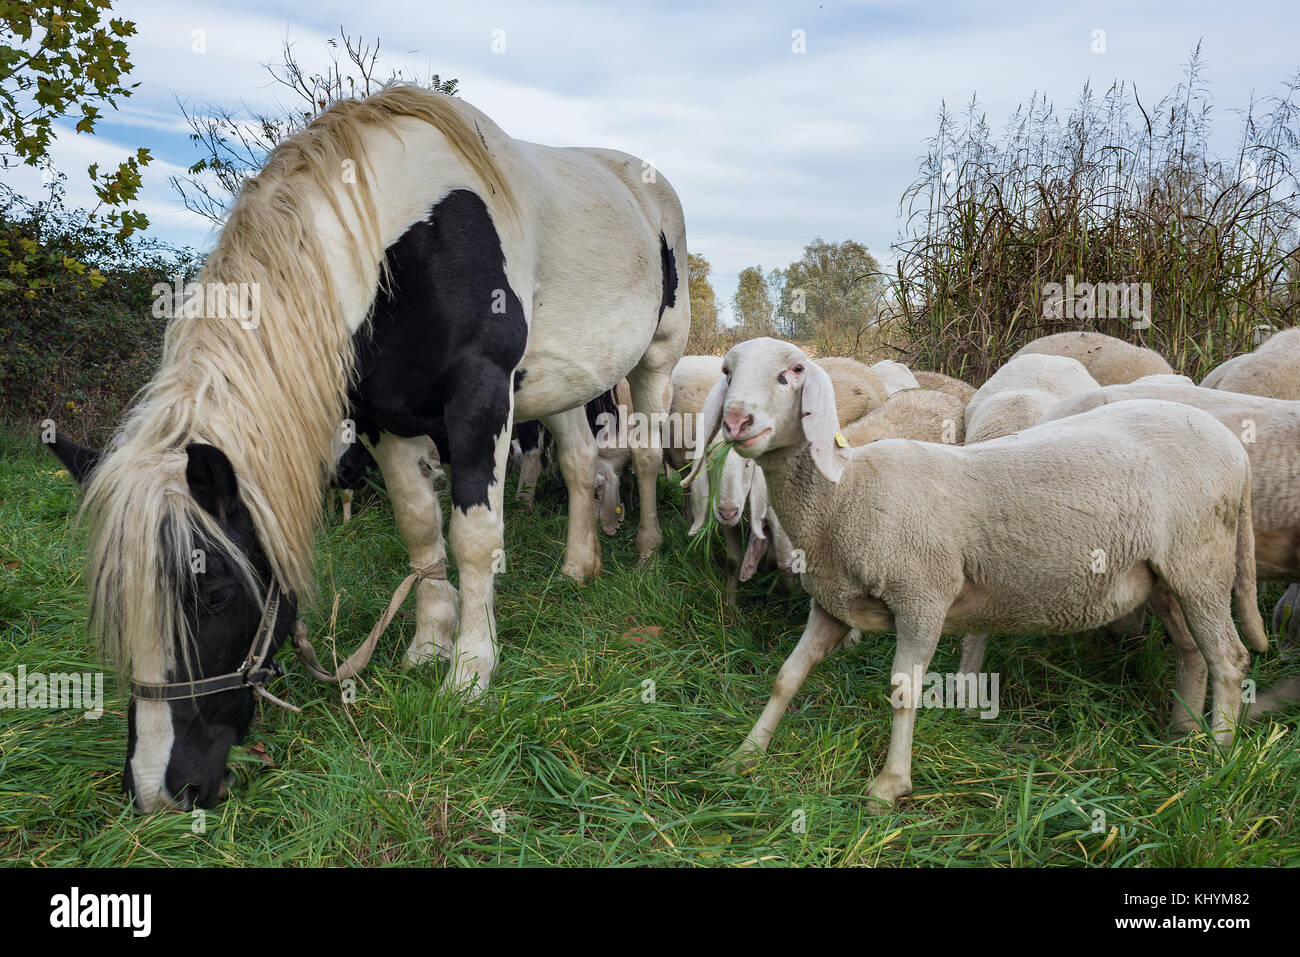 Reportage of Sheep-farming in the Bergamasca plain. Brambilla Simone Live News - Stock Image